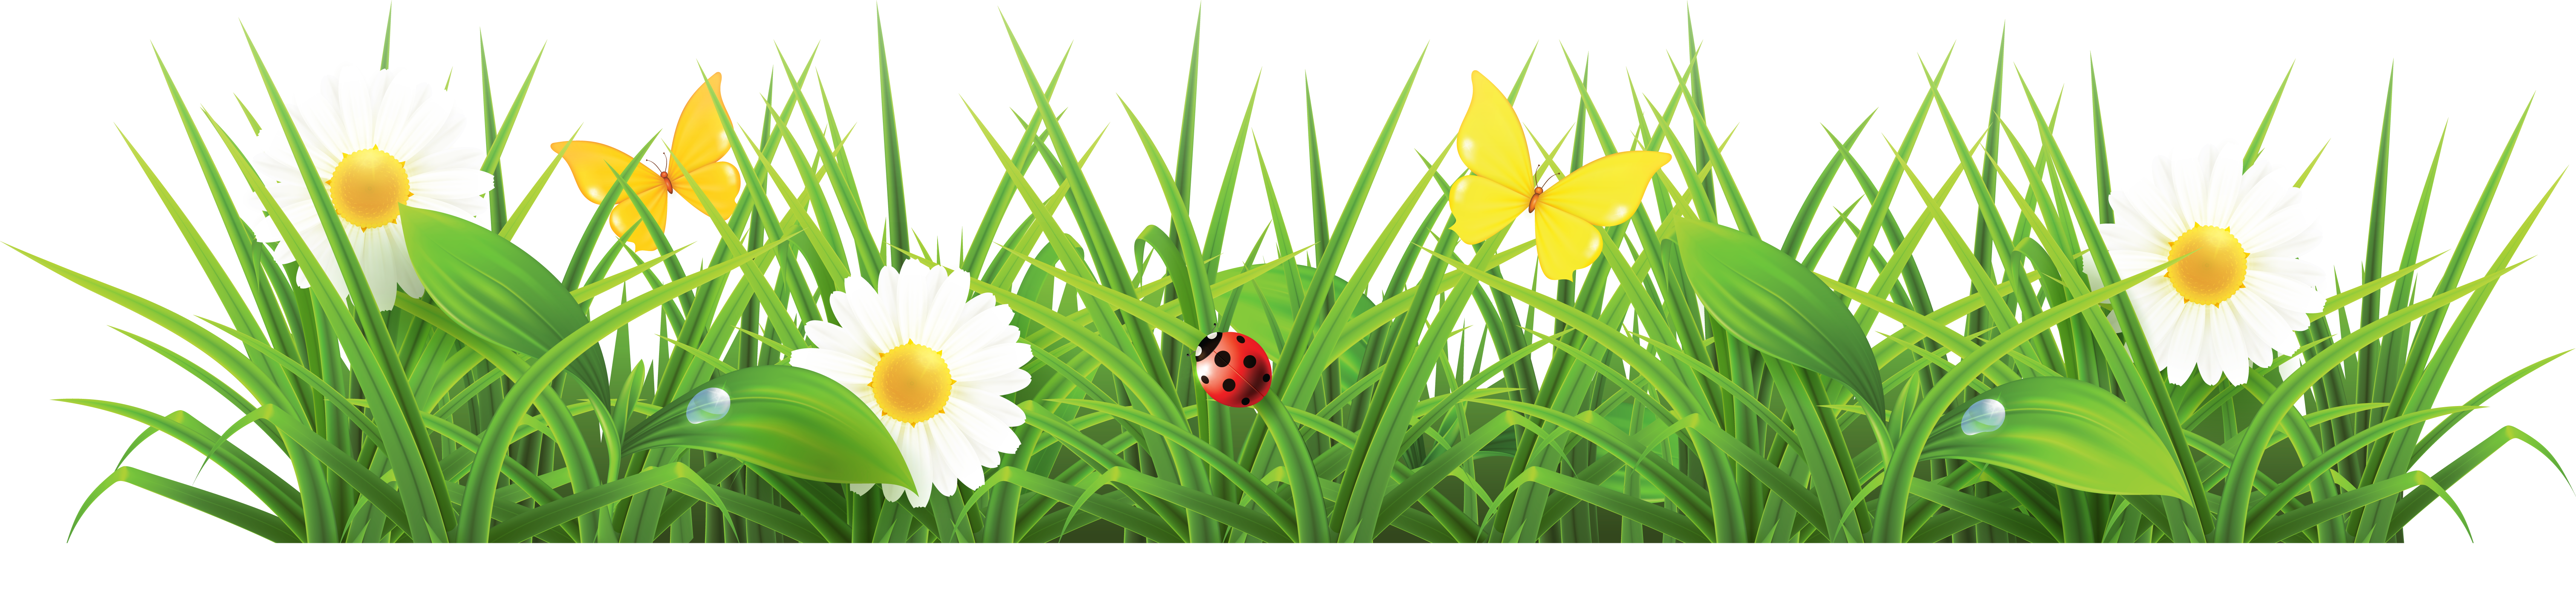 Grass clipart #11, Download drawings